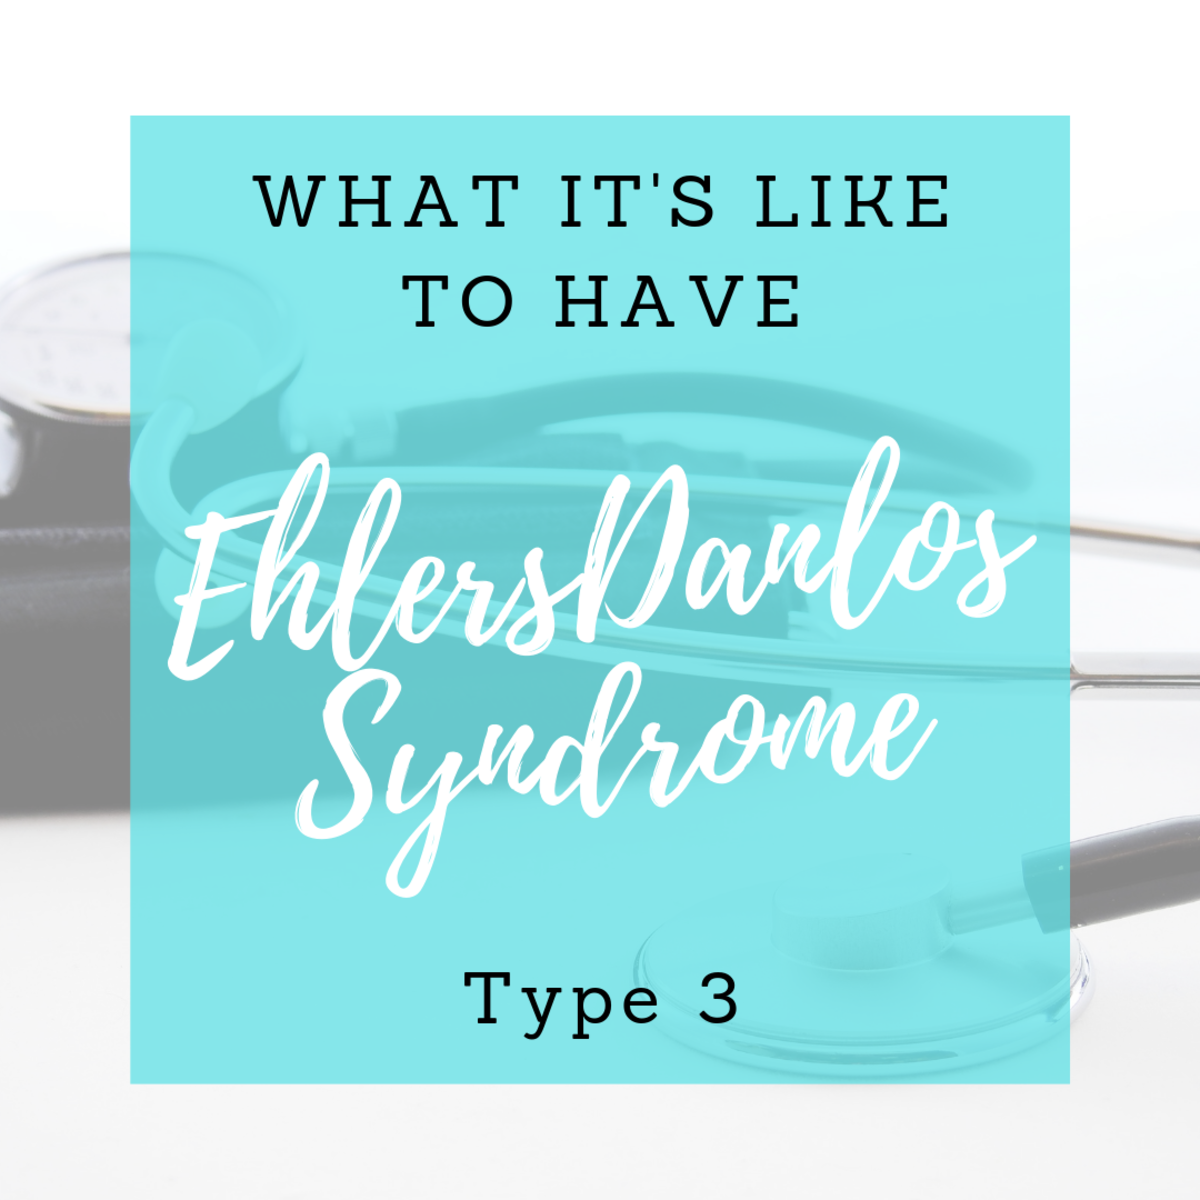 What It's Like to Live With Ehlers Danlos Syndrome Type 3